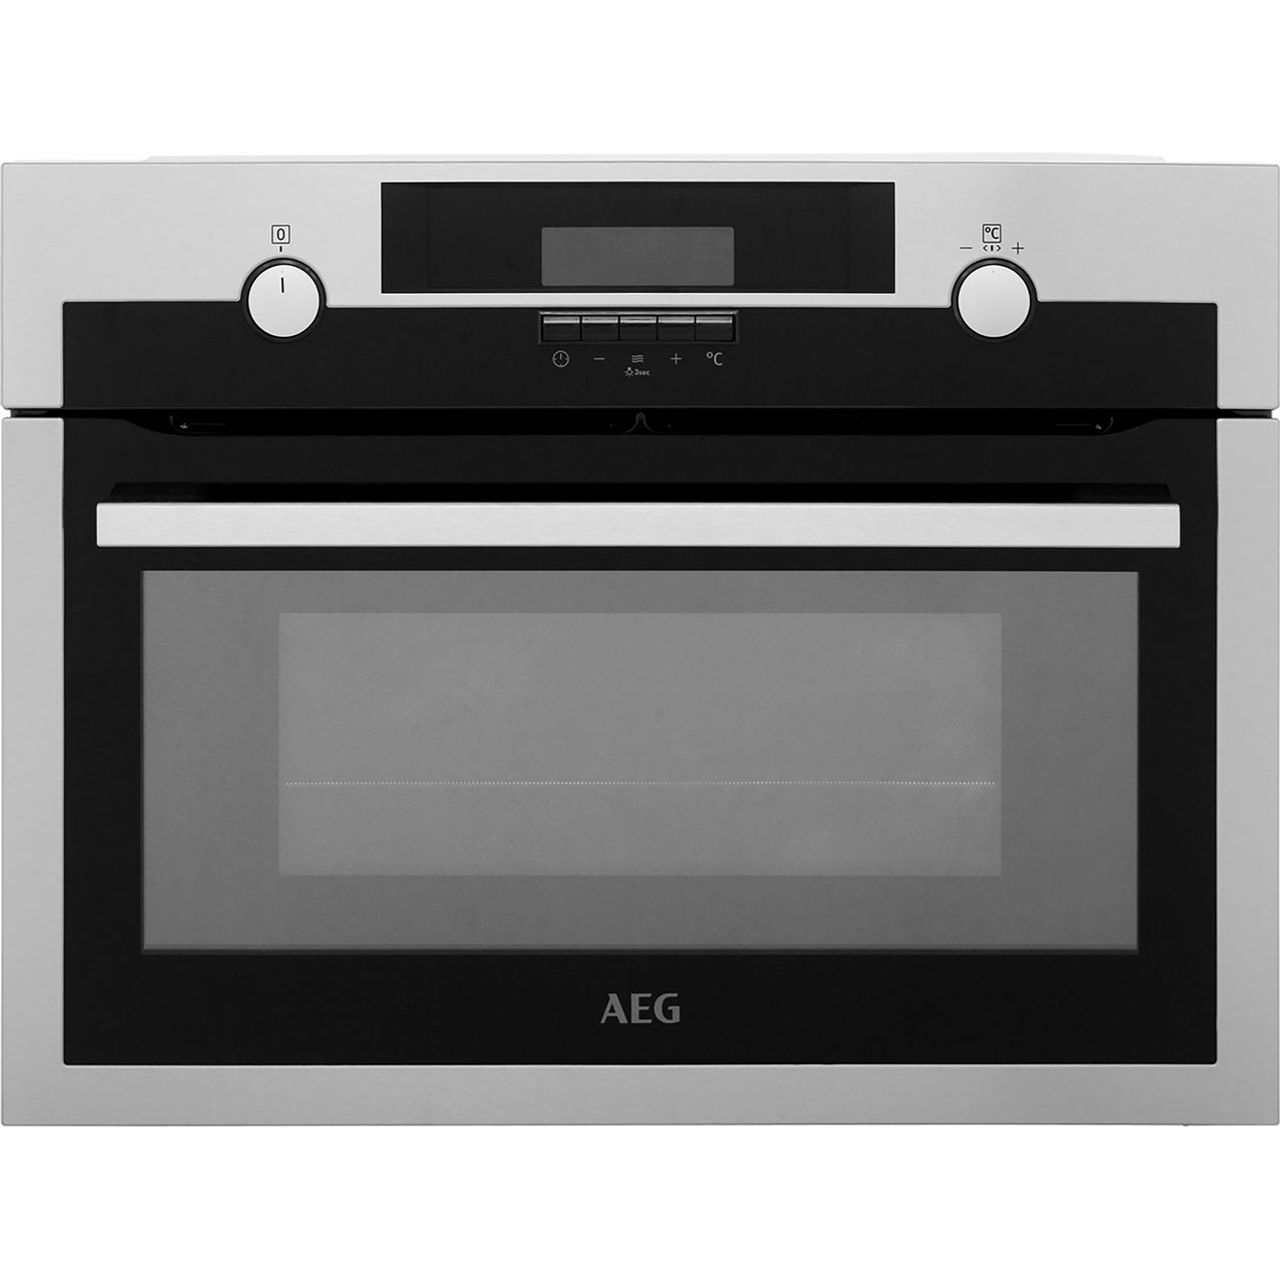 Aeg Kme561000m Built In Compact Electric Single Oven With Microwave Function Stainless Steel Ss